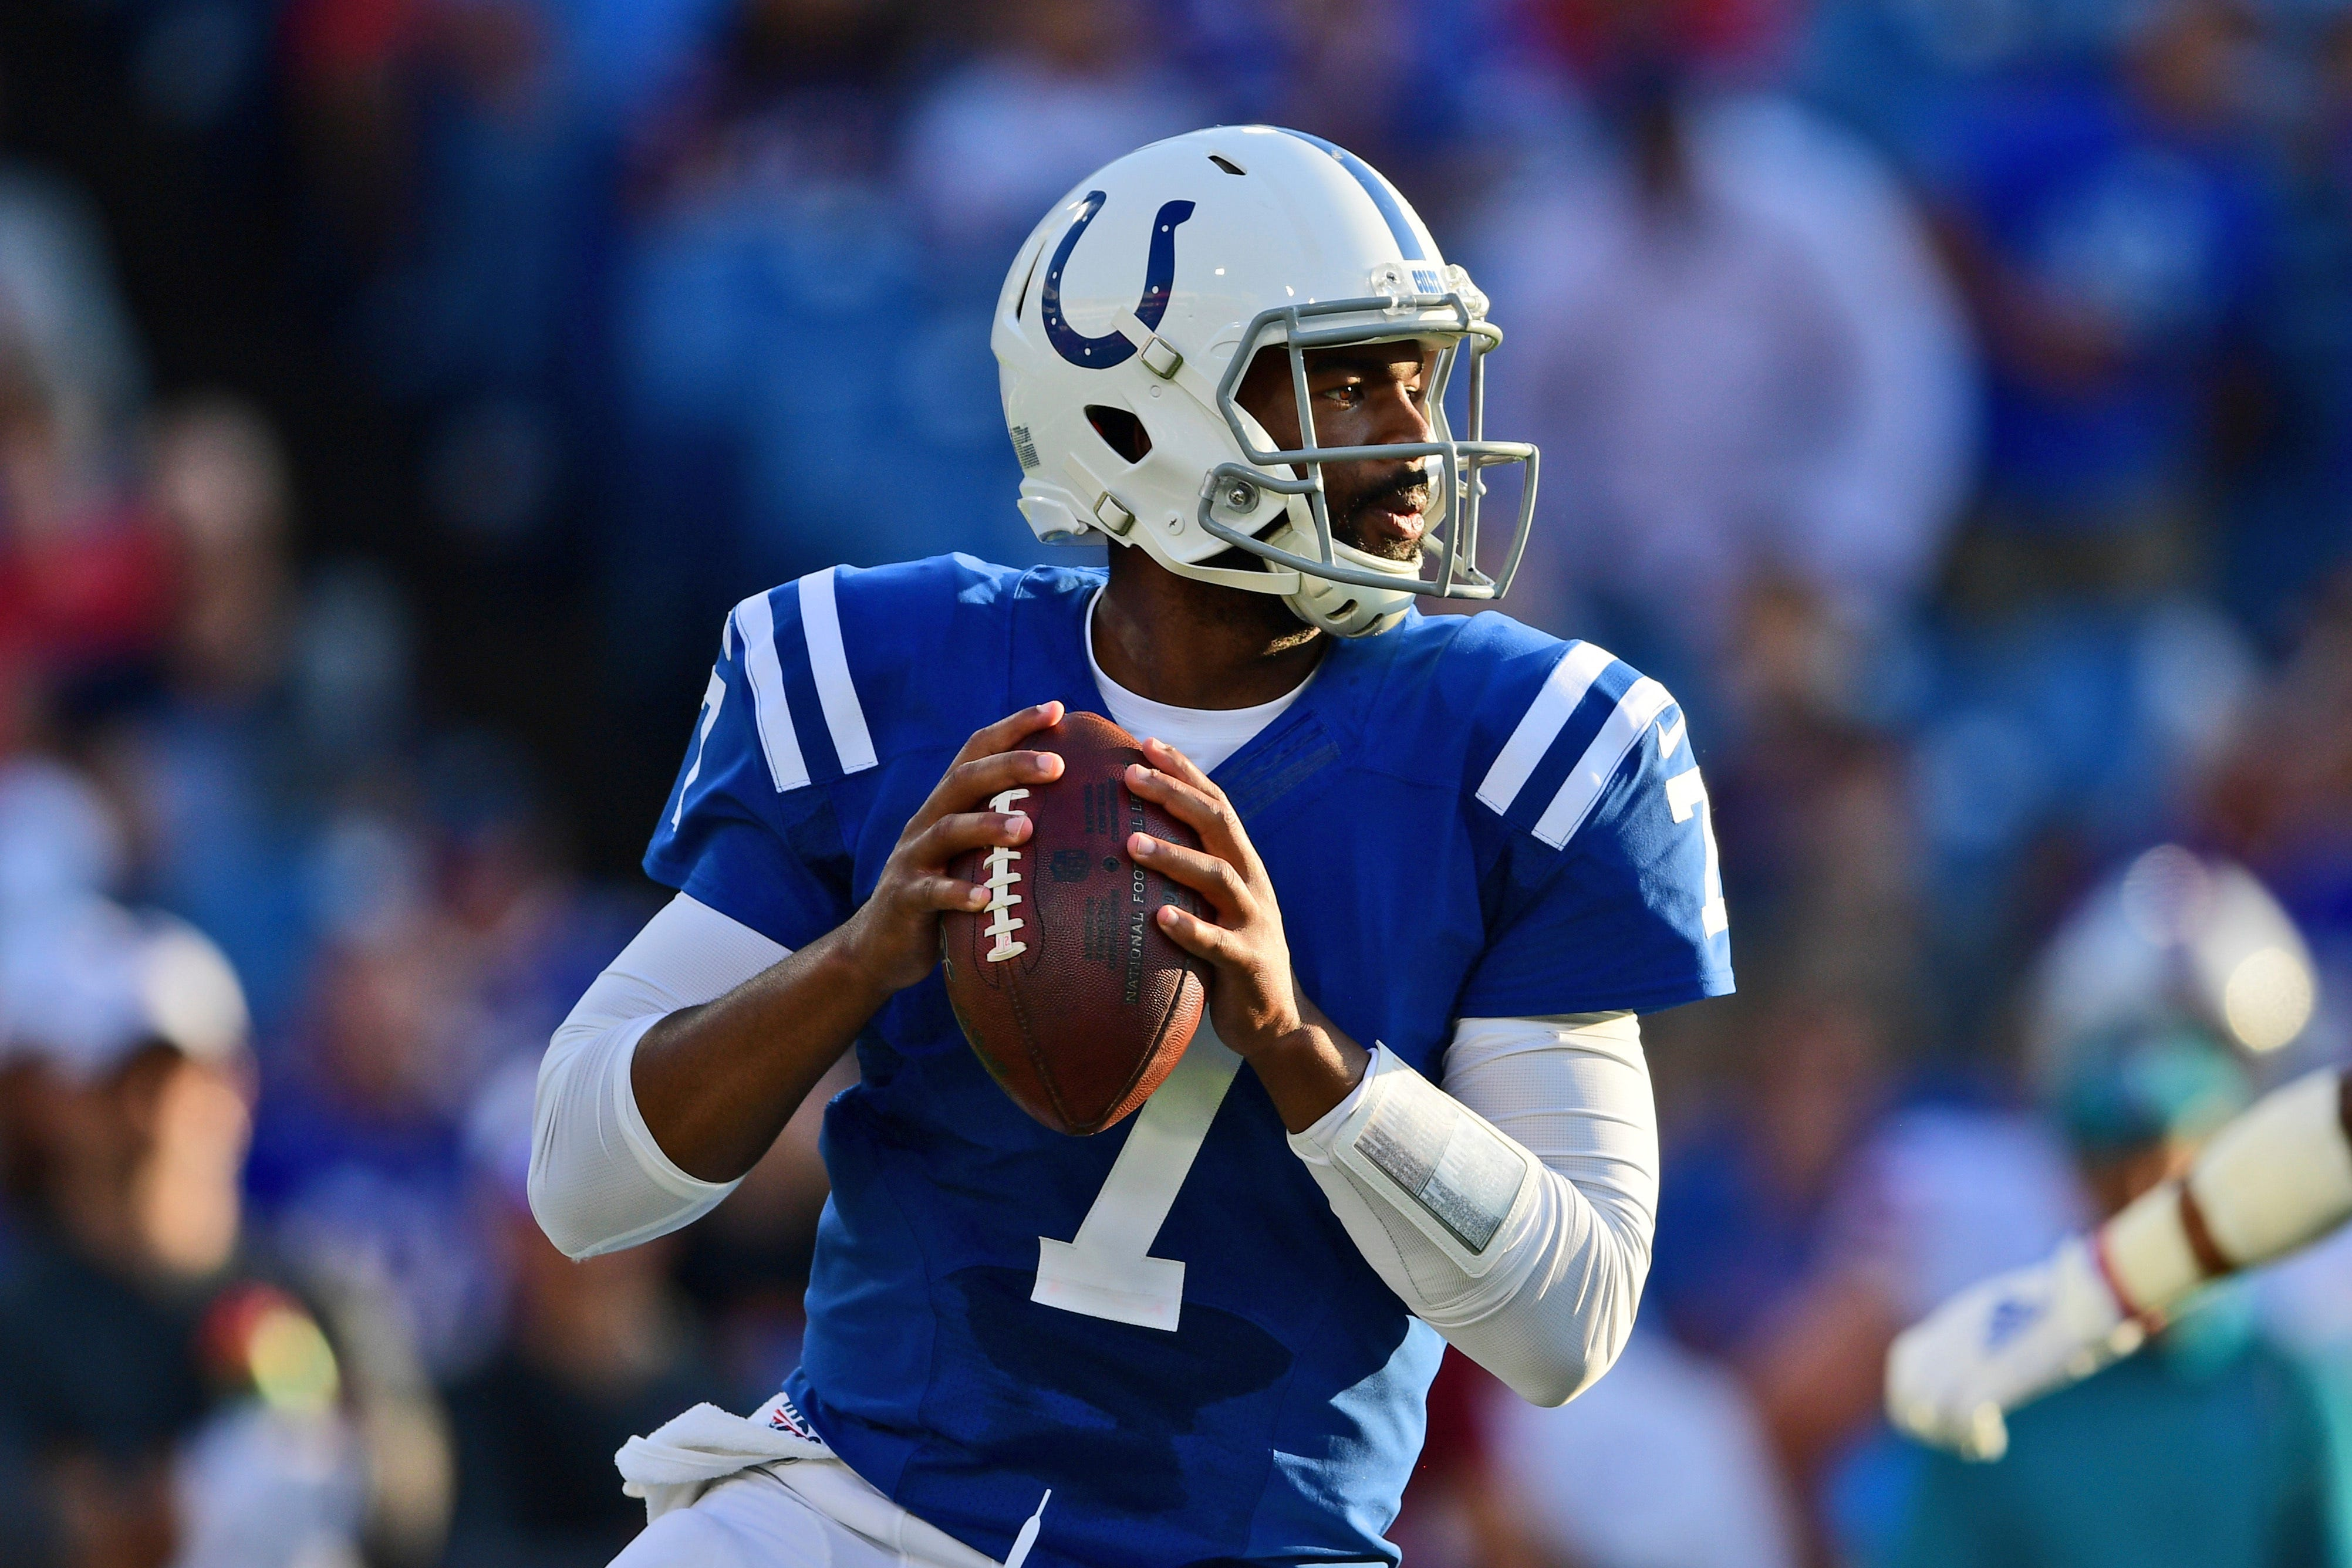 Doyel: Who says sky has to fall on 2019 Indianapolis Colts?